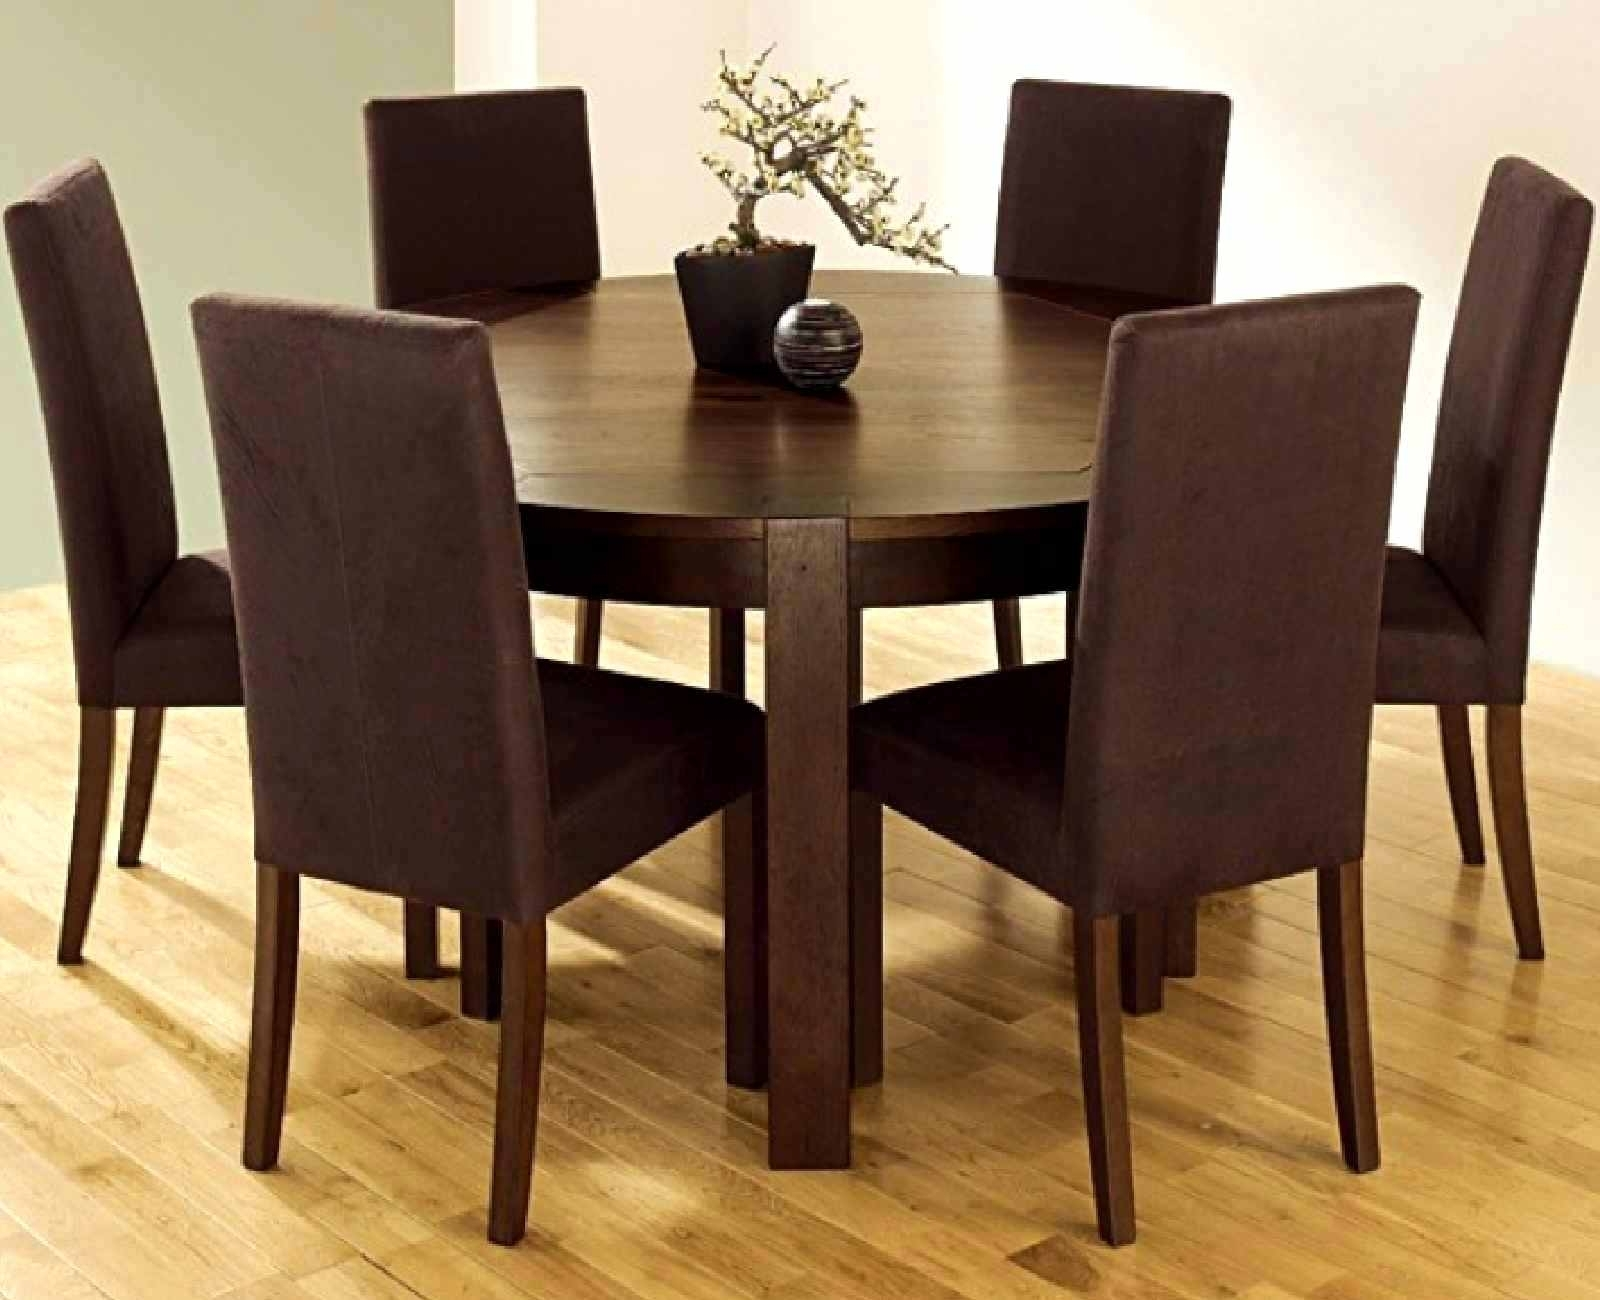 Enjoyable-Dining-Table-With-Six-Chairs-Ideas-Dining-Table-Round intended for Well-known Dining Tables And Six Chairs